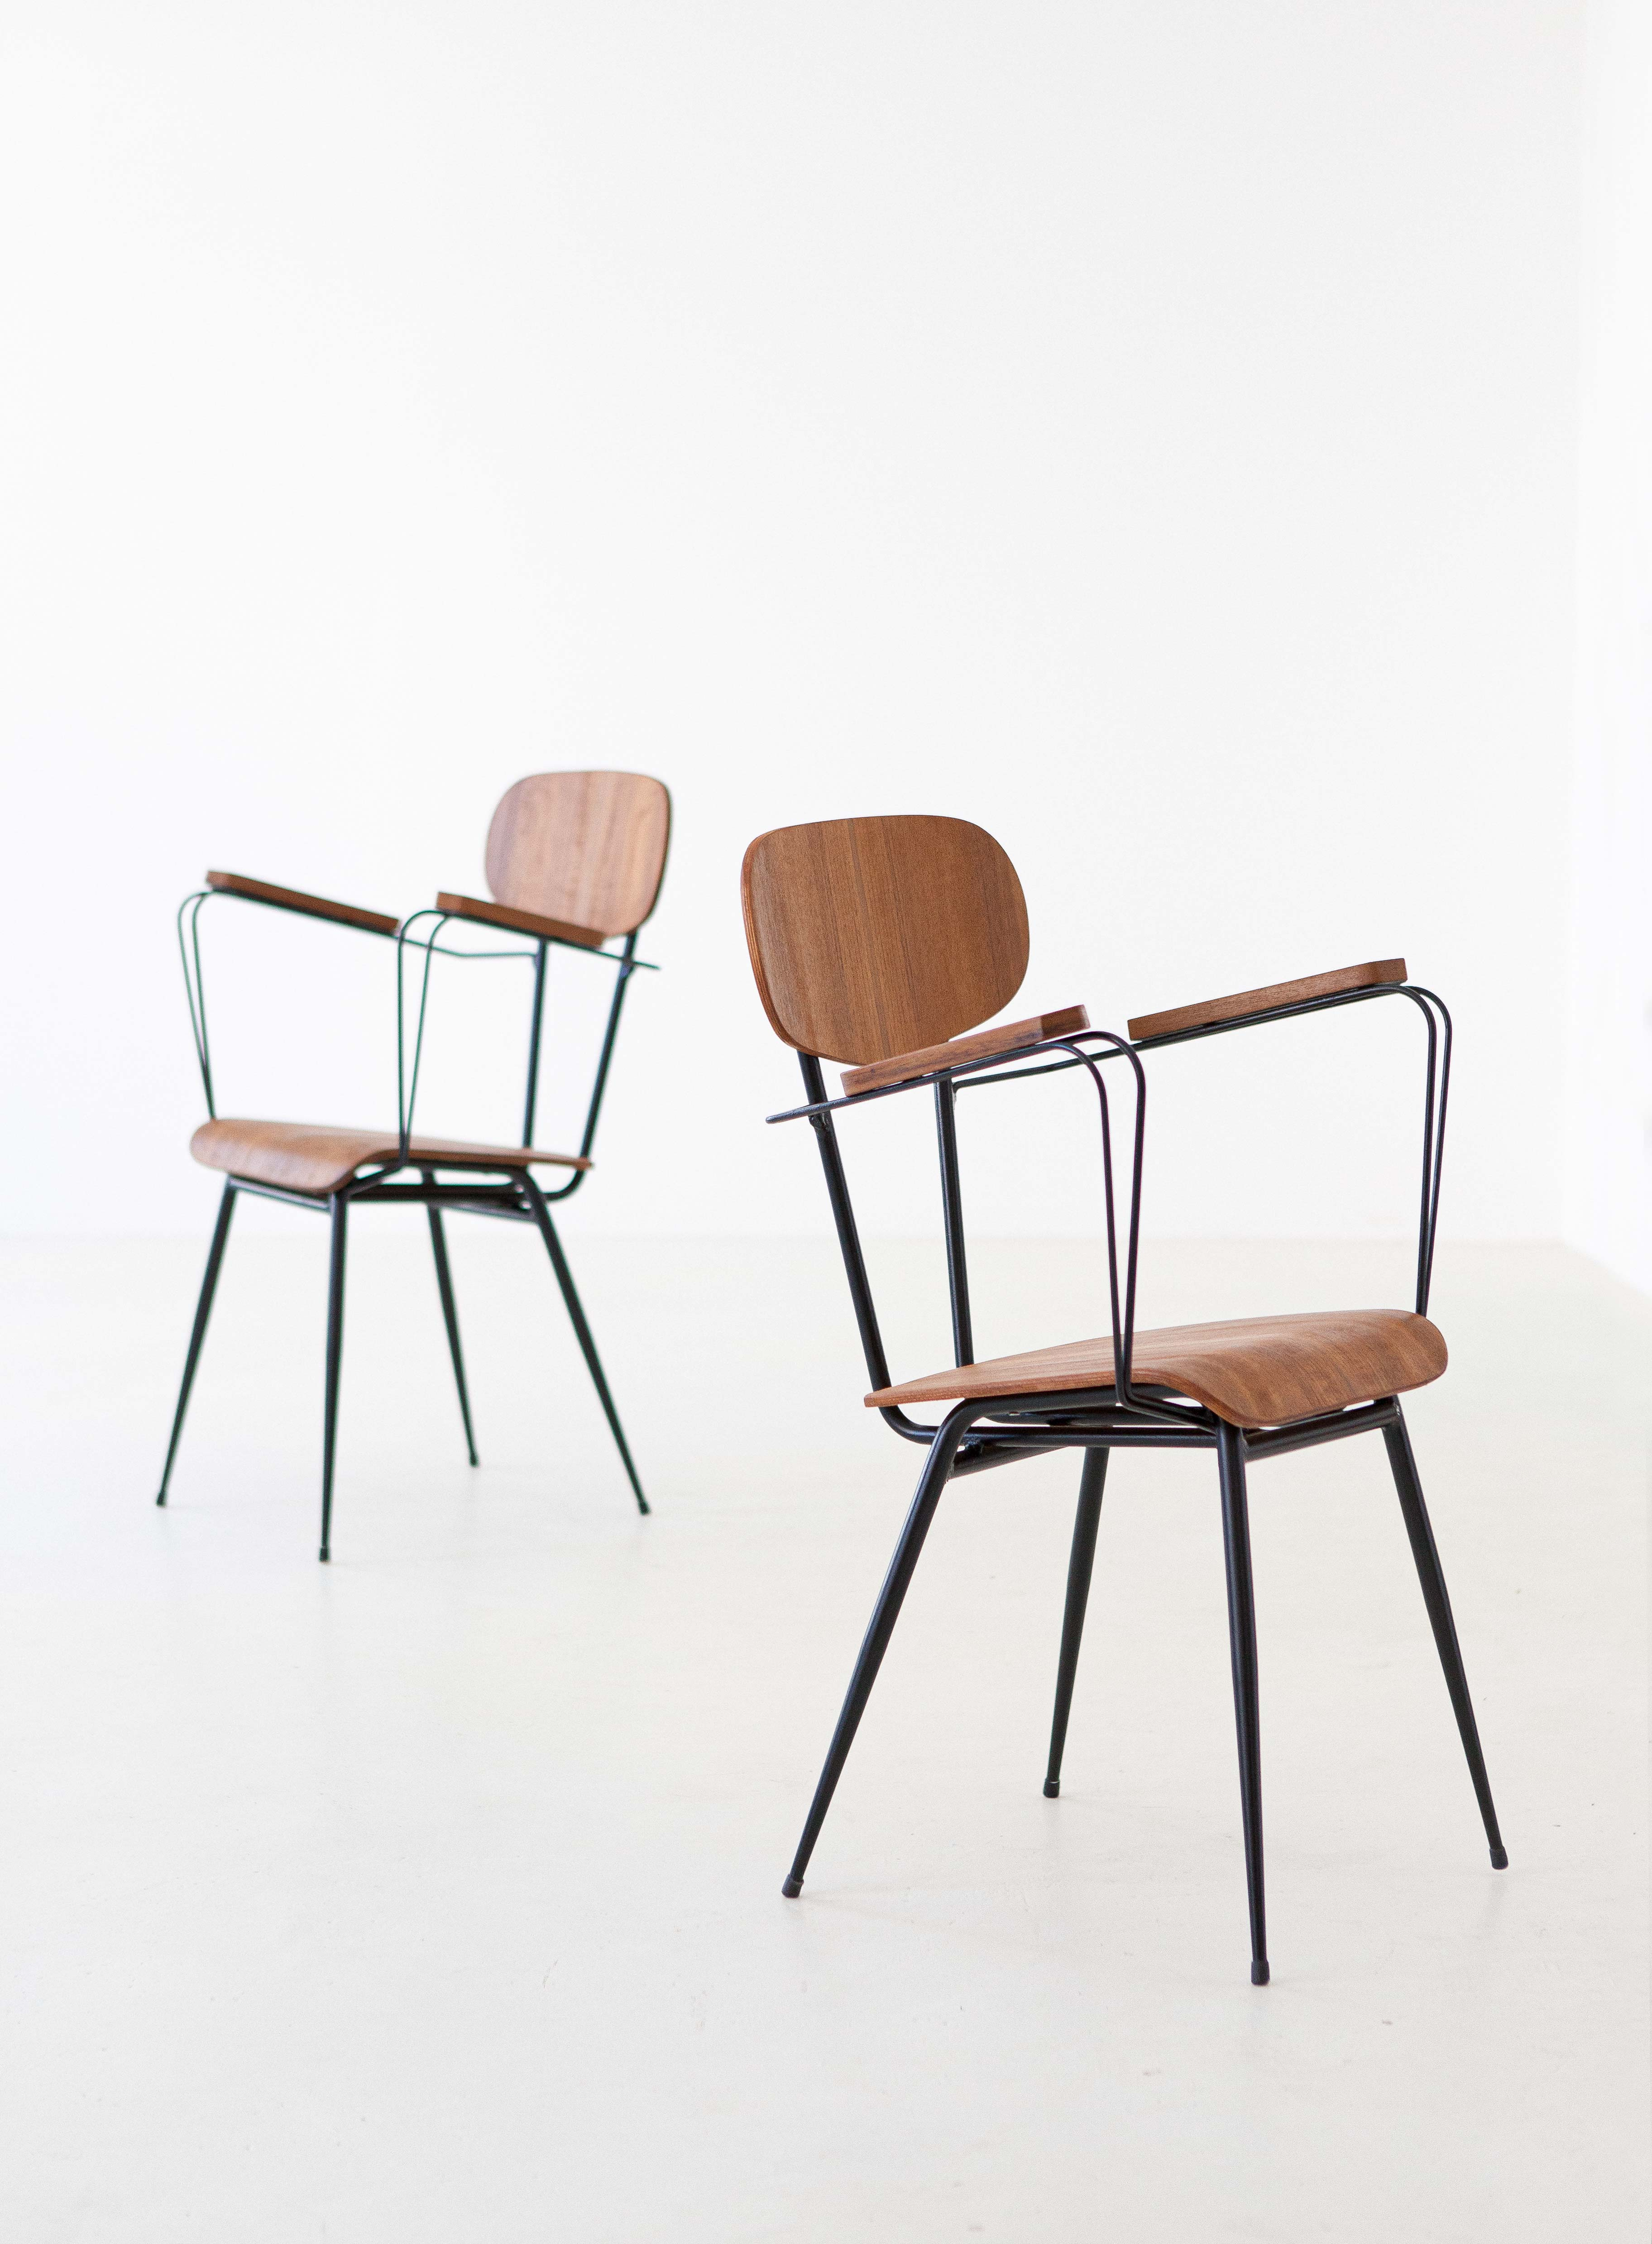 1950s-italian-set-of-four-teak-and-iron-chairs-3-se303